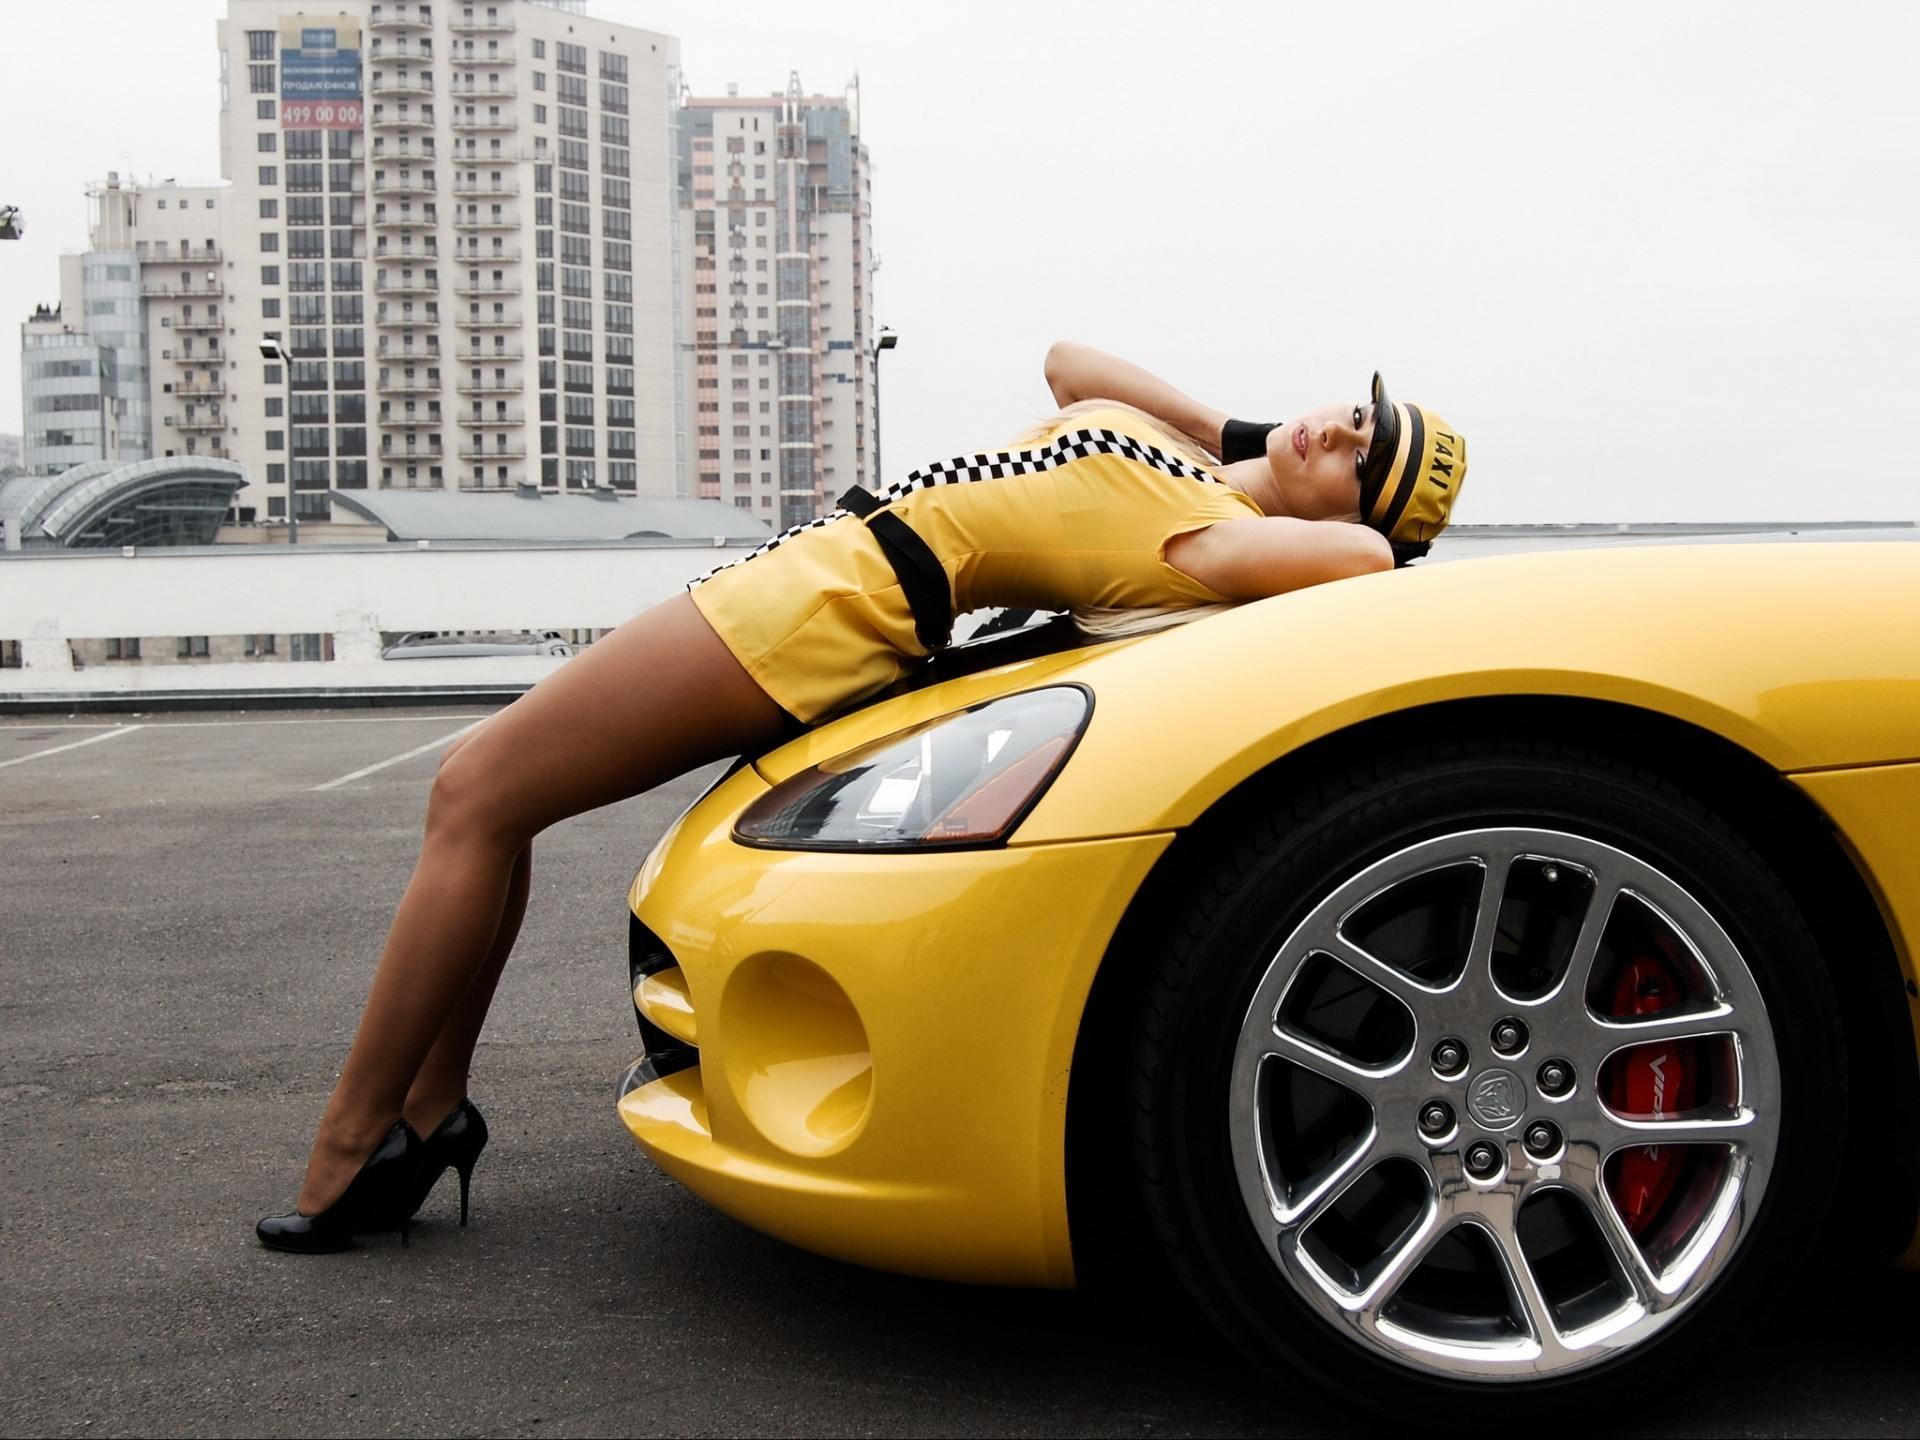 woman Viper pitgirls HD Wallpaper